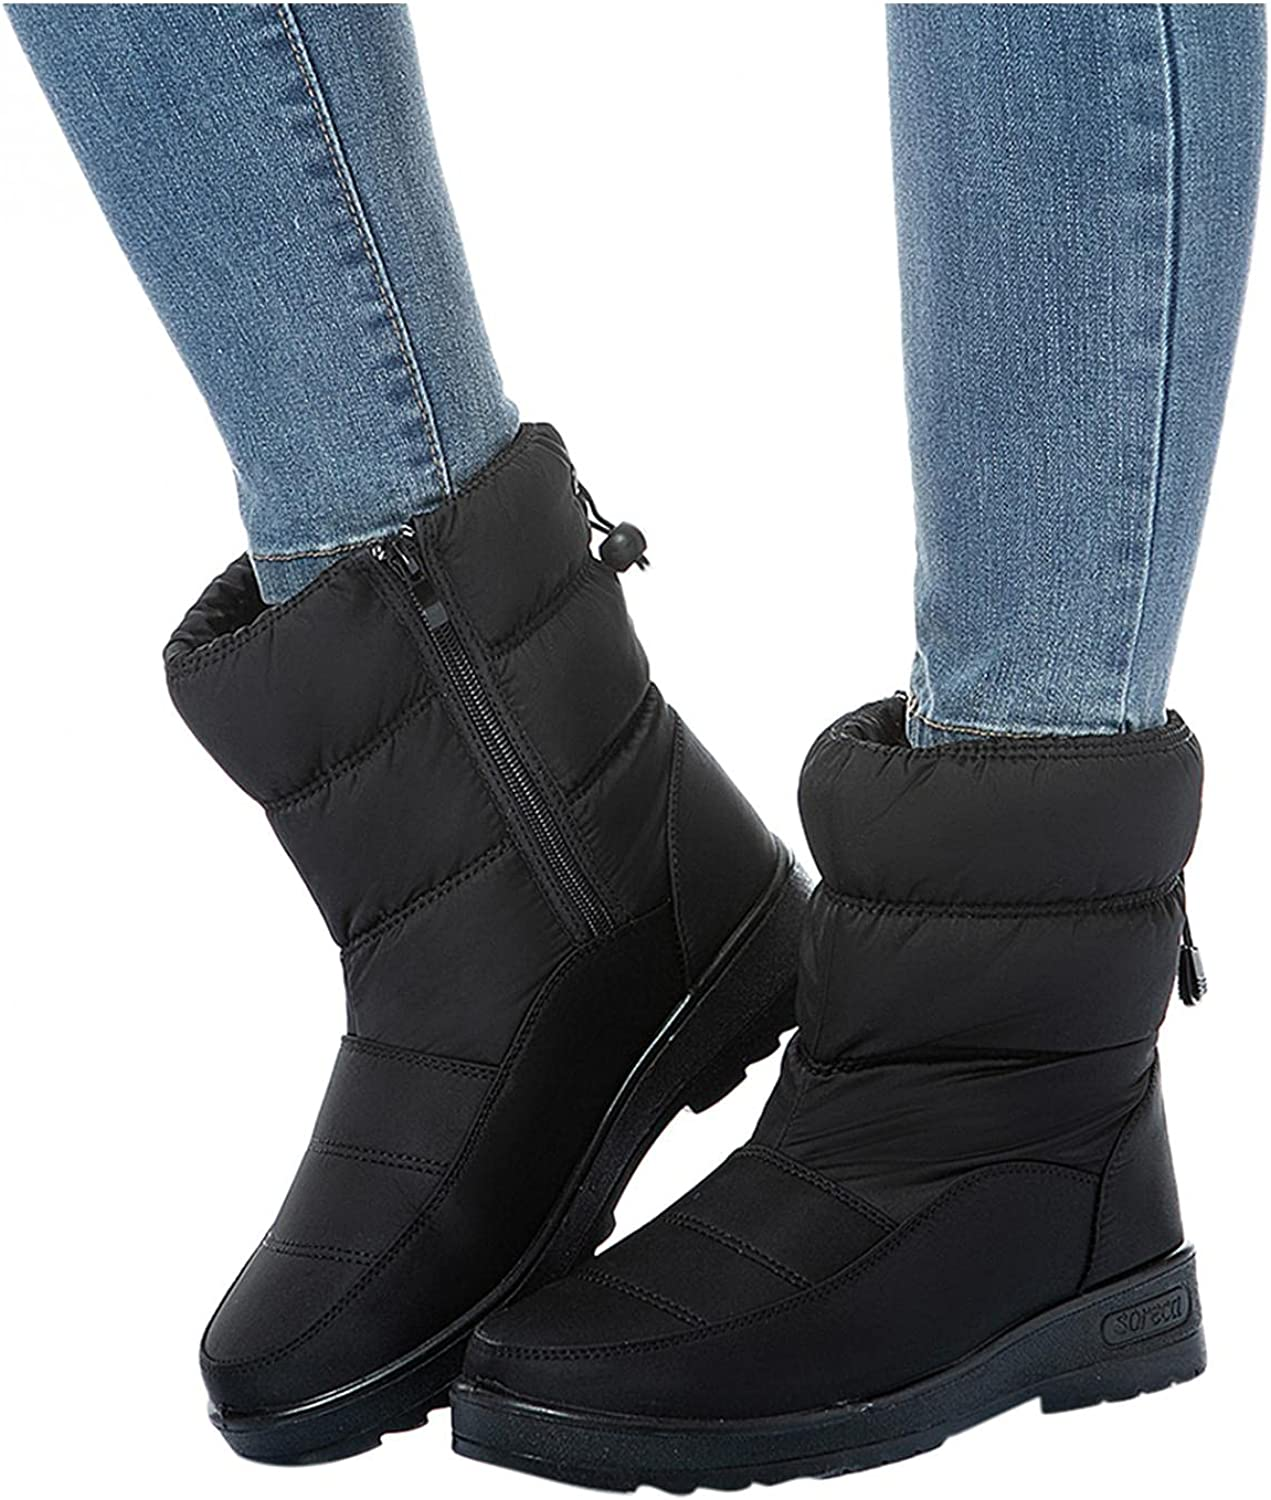 Gibobby Snow Boots for Women Waterproof Ankle Boots Strap Slip On Outdoor Warm Fleece Lining Winter Short Cowboy Boots